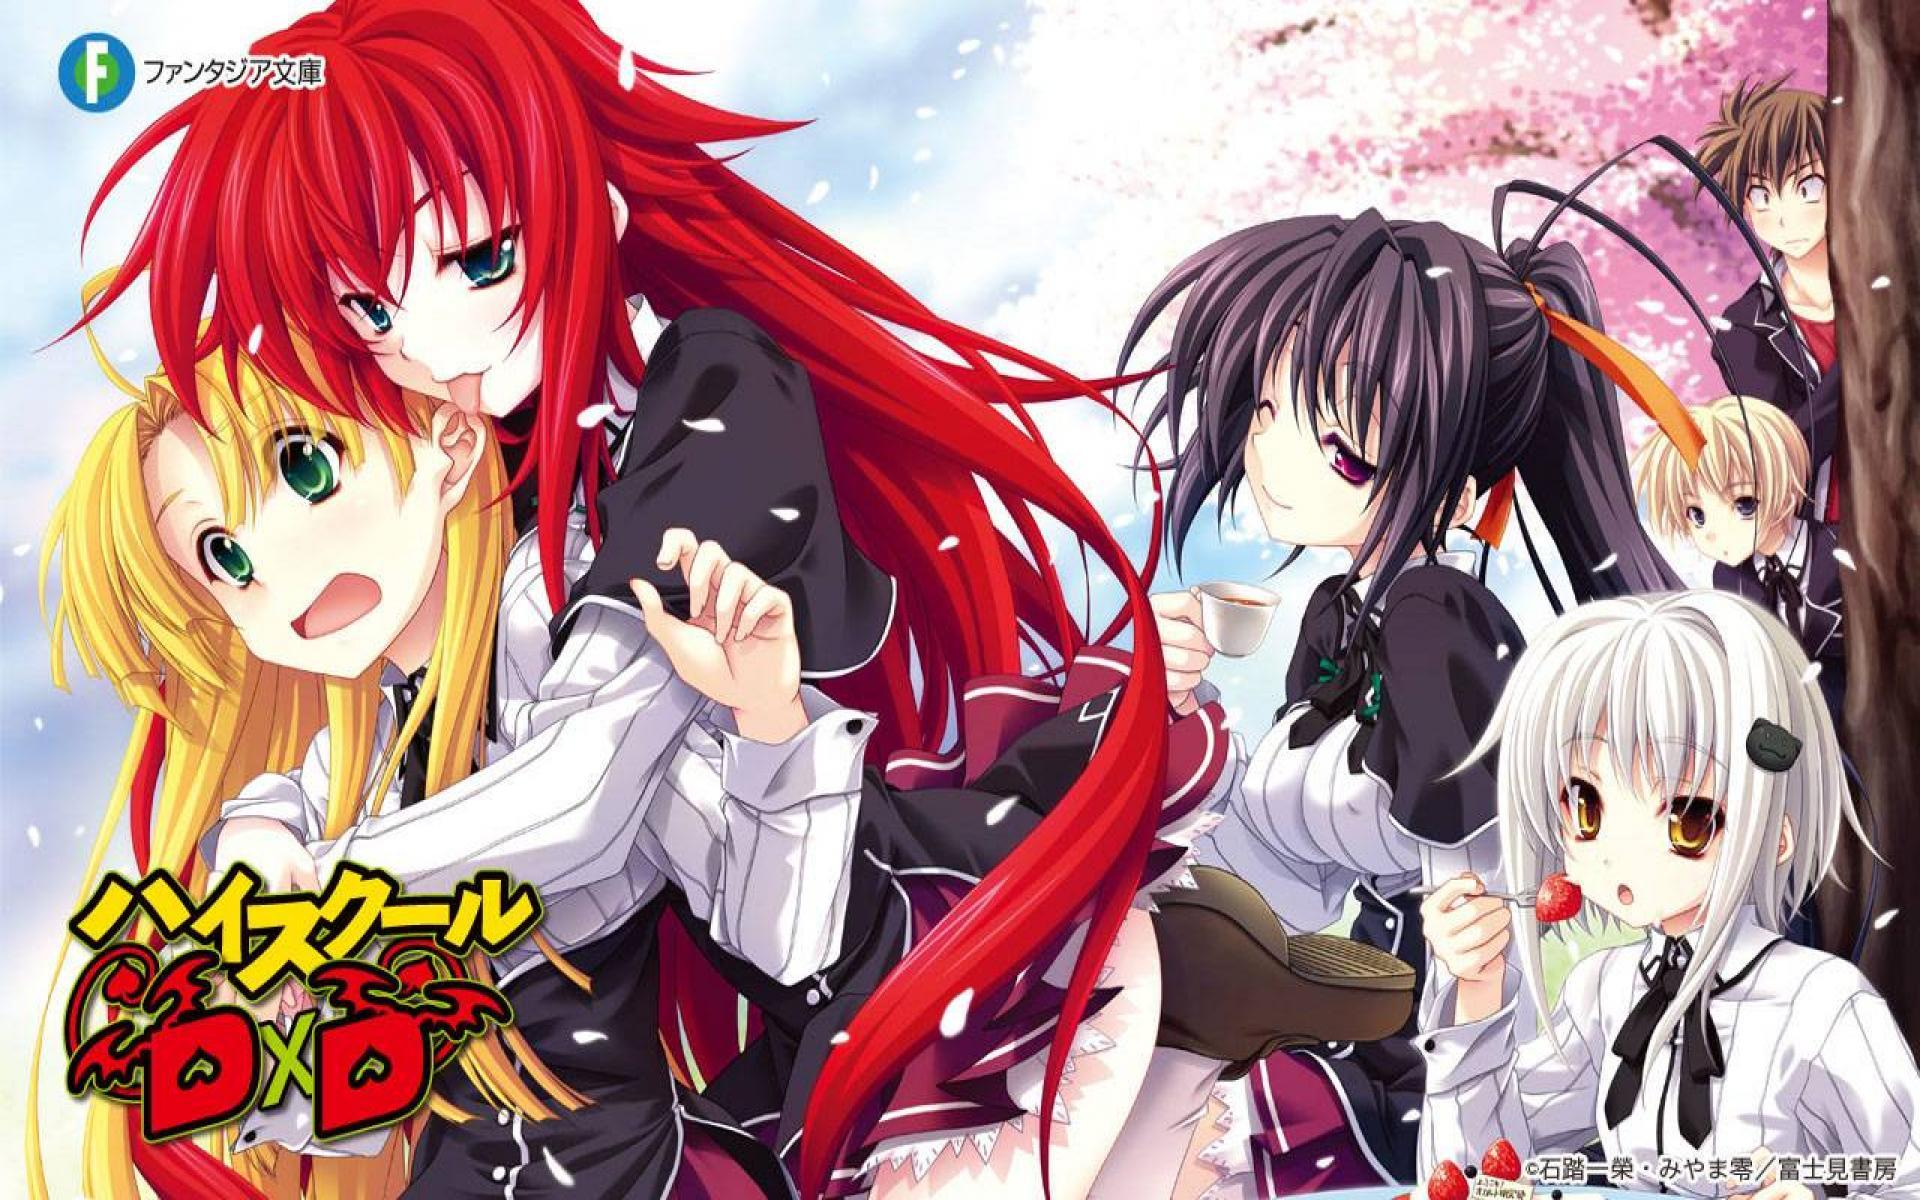 Highschool Dxd Wallpapers 0.17 Mb